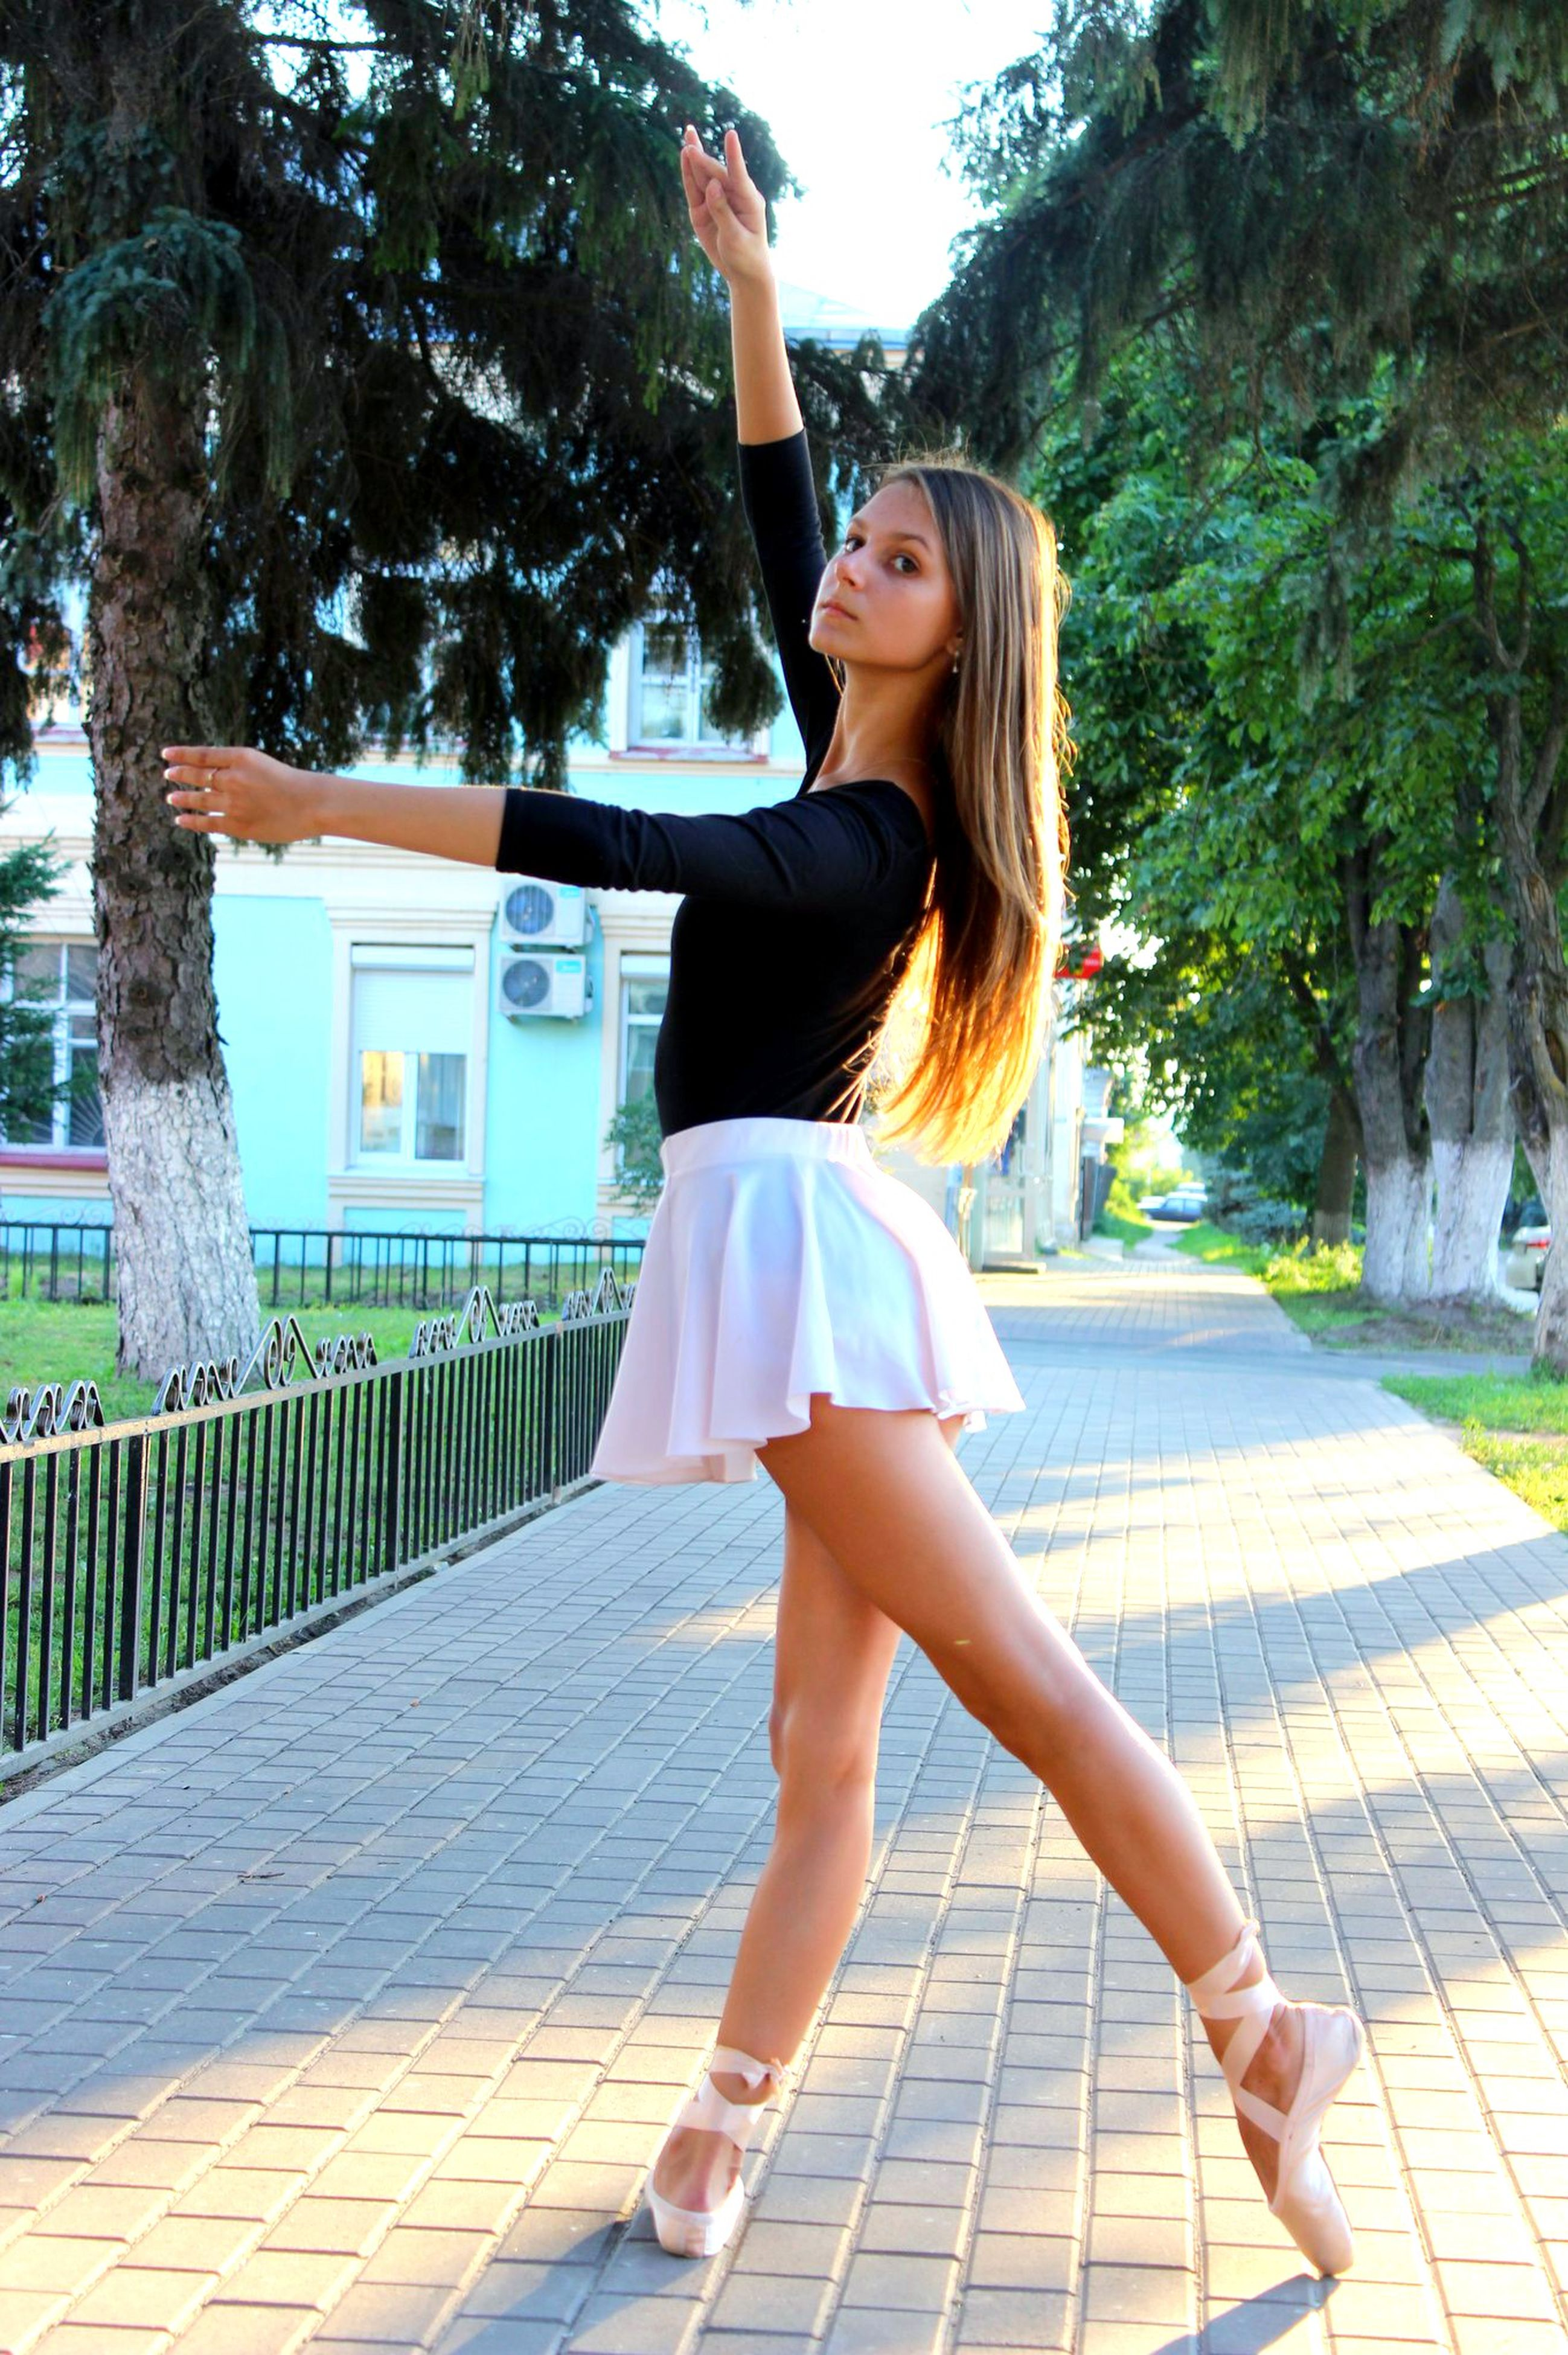 tree, lifestyles, full length, young adult, casual clothing, leisure activity, young women, person, long hair, standing, railing, dress, rear view, park - man made space, day, outdoors, side view